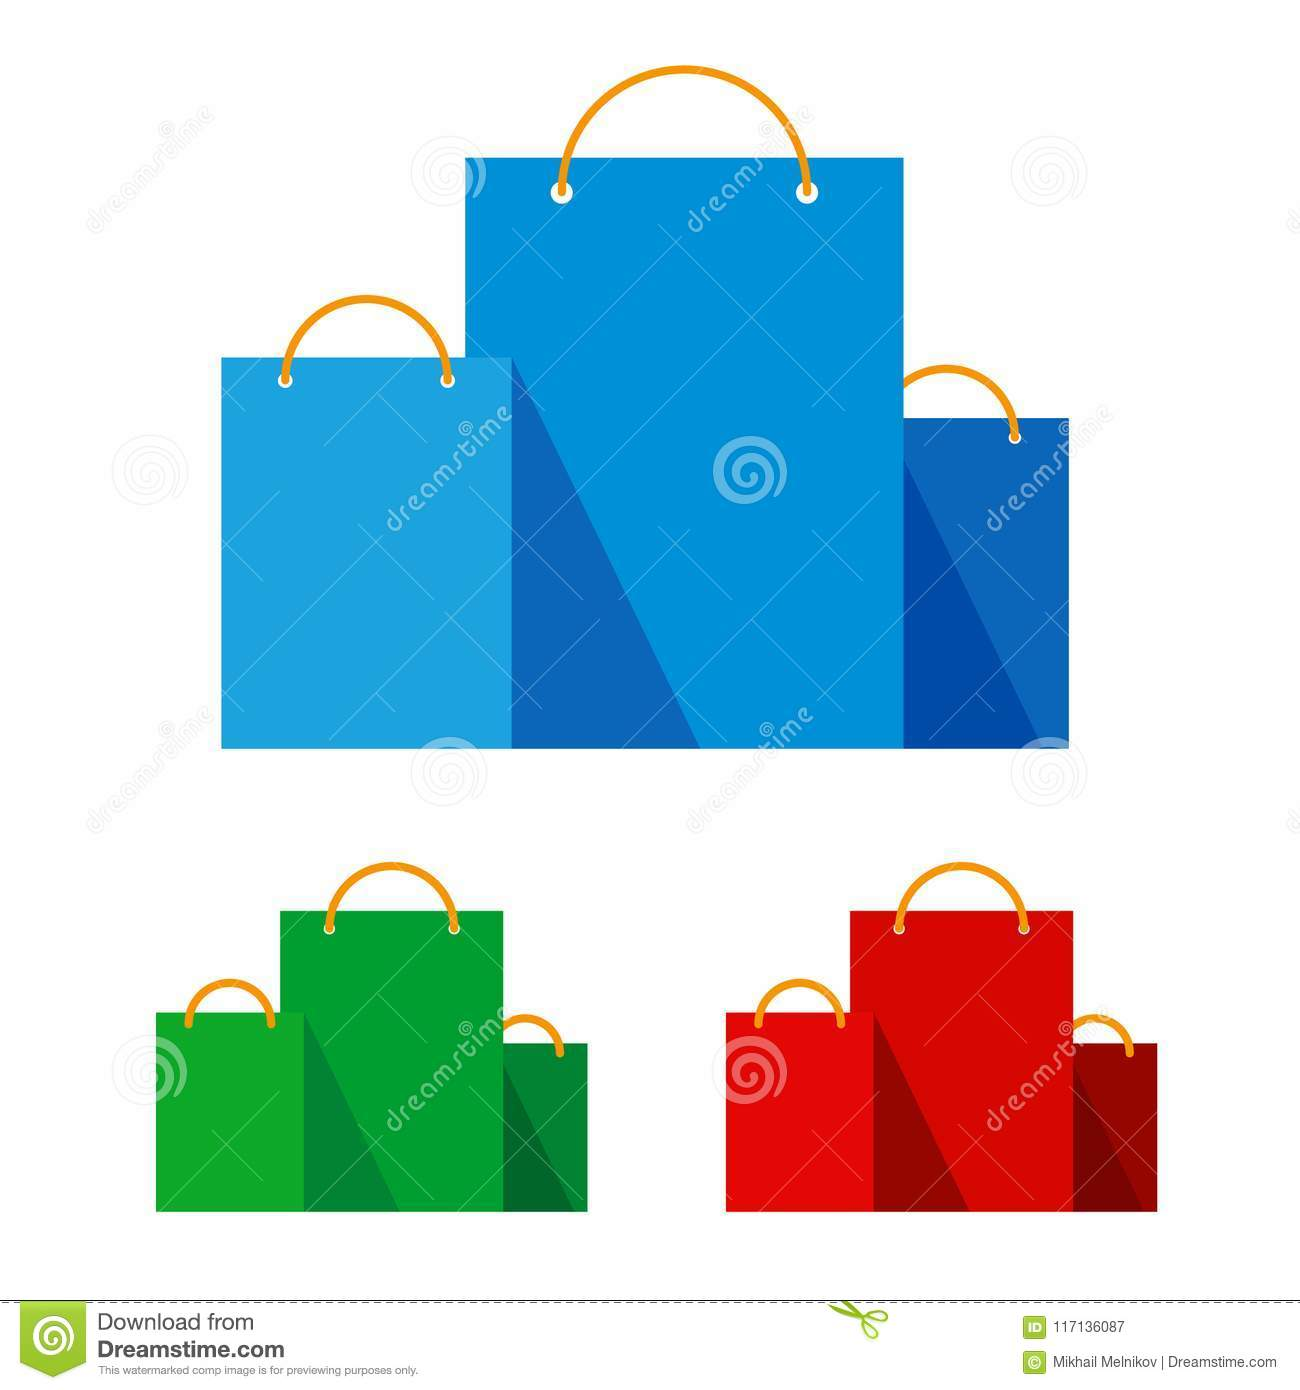 f1bba2fd Group of bright flat shopping bags. Red, green and blue paper pockets  icons. Signs for online shop or store. Isolated on white background, with  place for ...